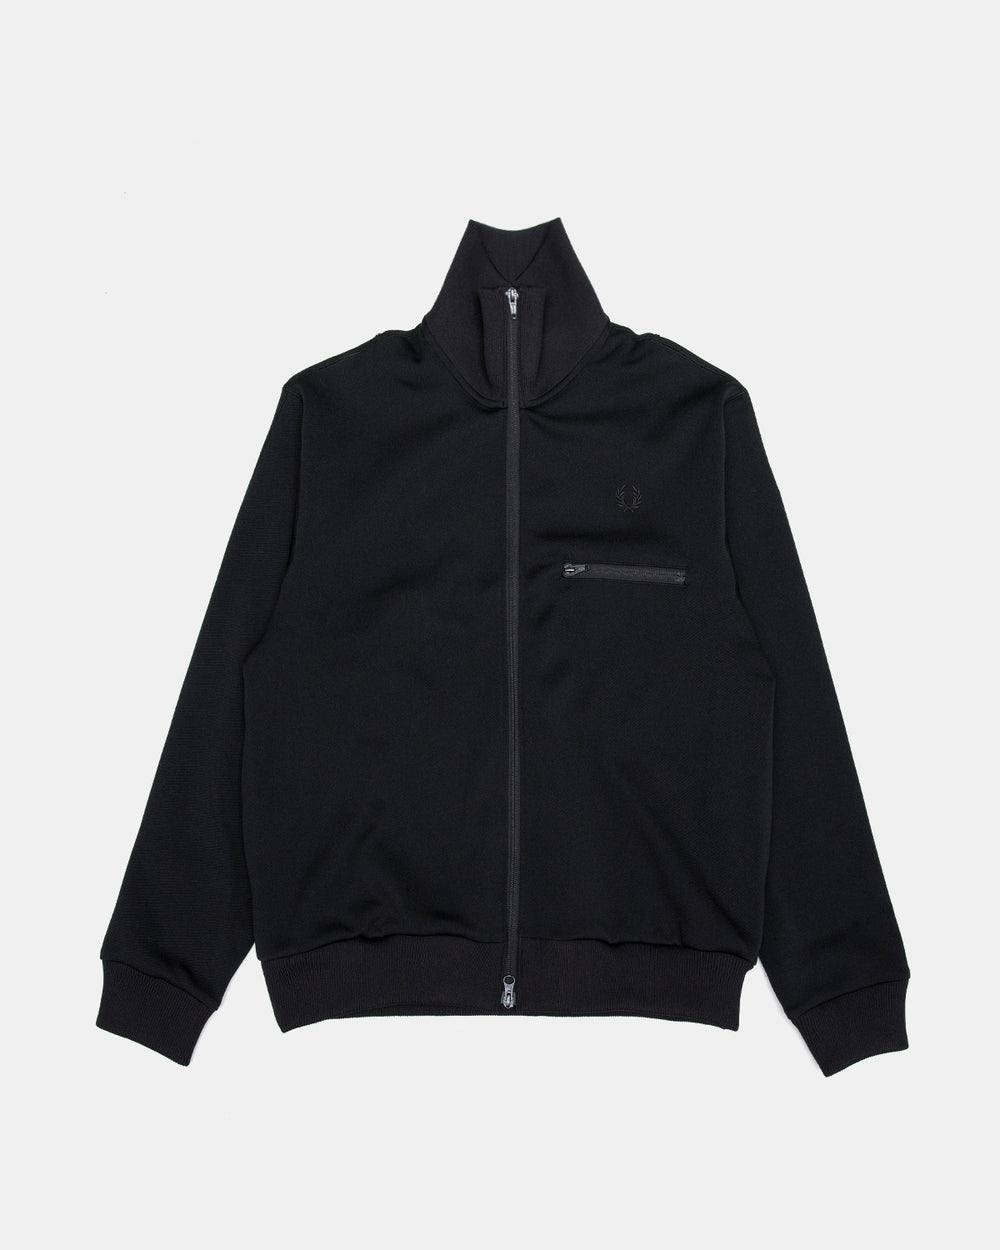 Fred Perry - Laurel Wreath Made in Japan Track Jacket (Black)